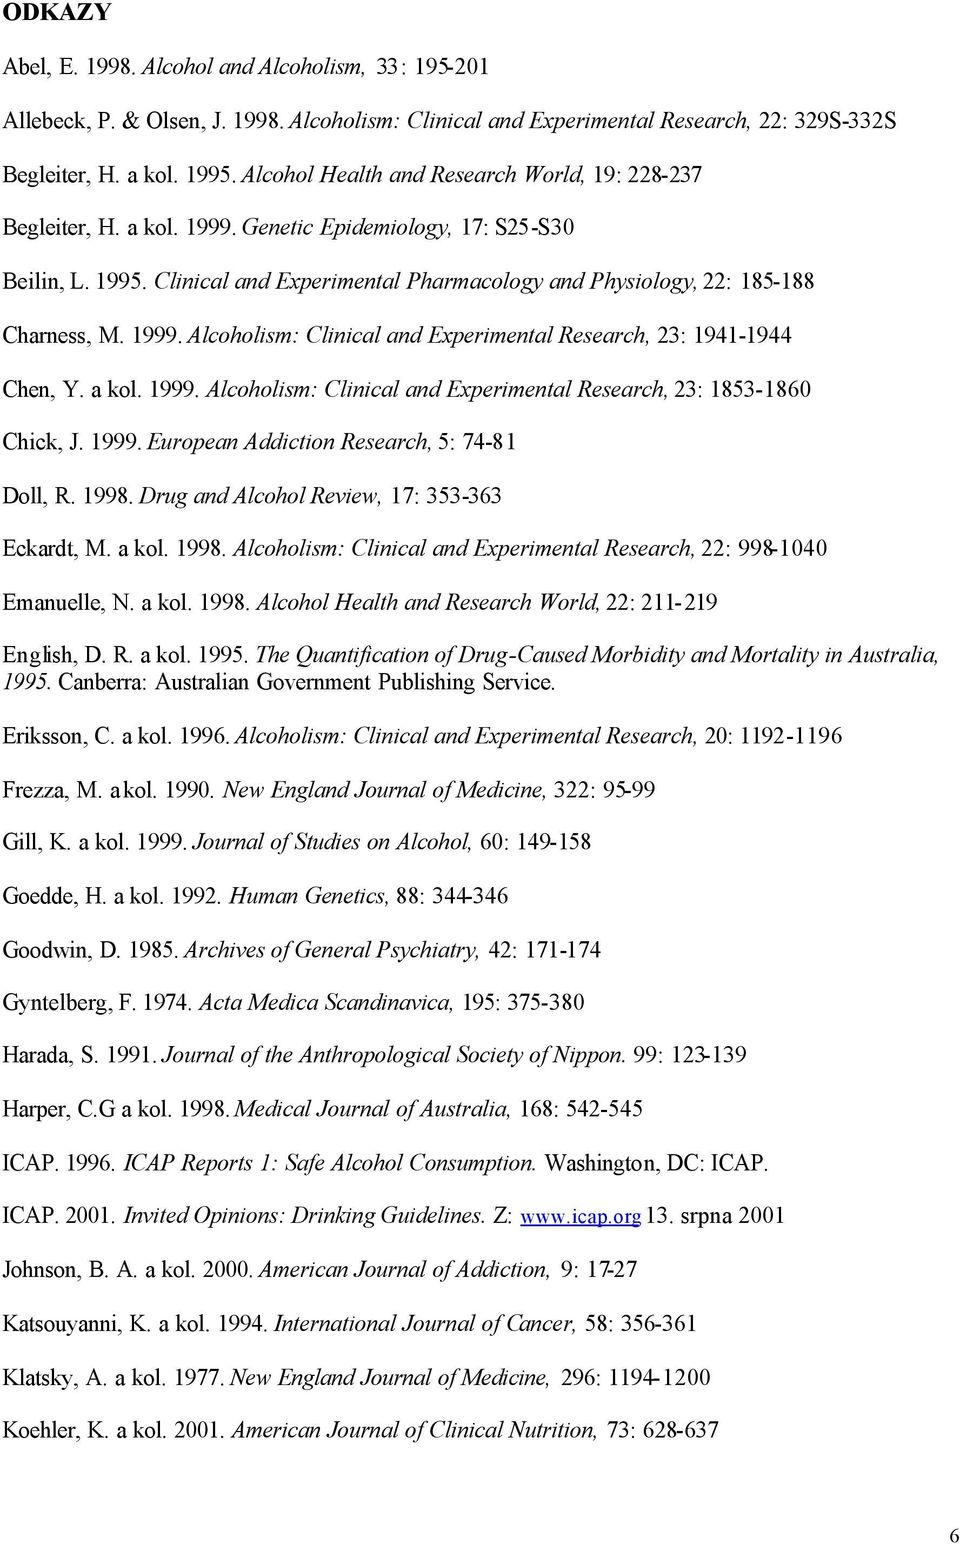 Clinical and Experimental Pharmacology and Physiology, 22: 185-188 Charness, M. 1999. Alcoholism: Clinical and Experimental Research, 23: 1941-1944 Chen, Y. a kol. 1999. Alcoholism: Clinical and Experimental Research, 23: 1853-1860 Chick, J.